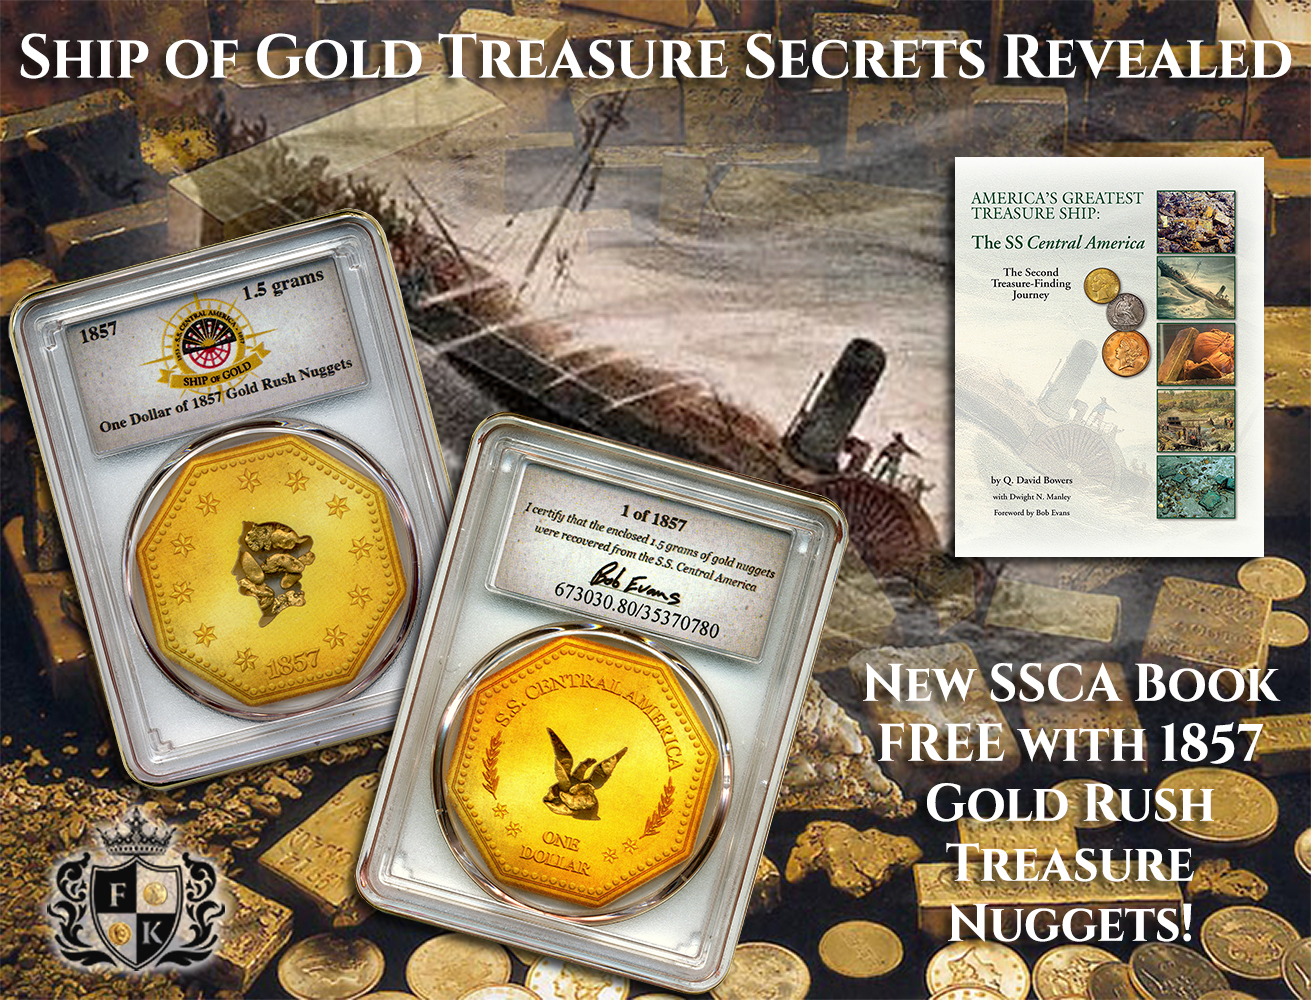 Finest-Known_SSCA-Treasure-Gold-Nuggets+Book